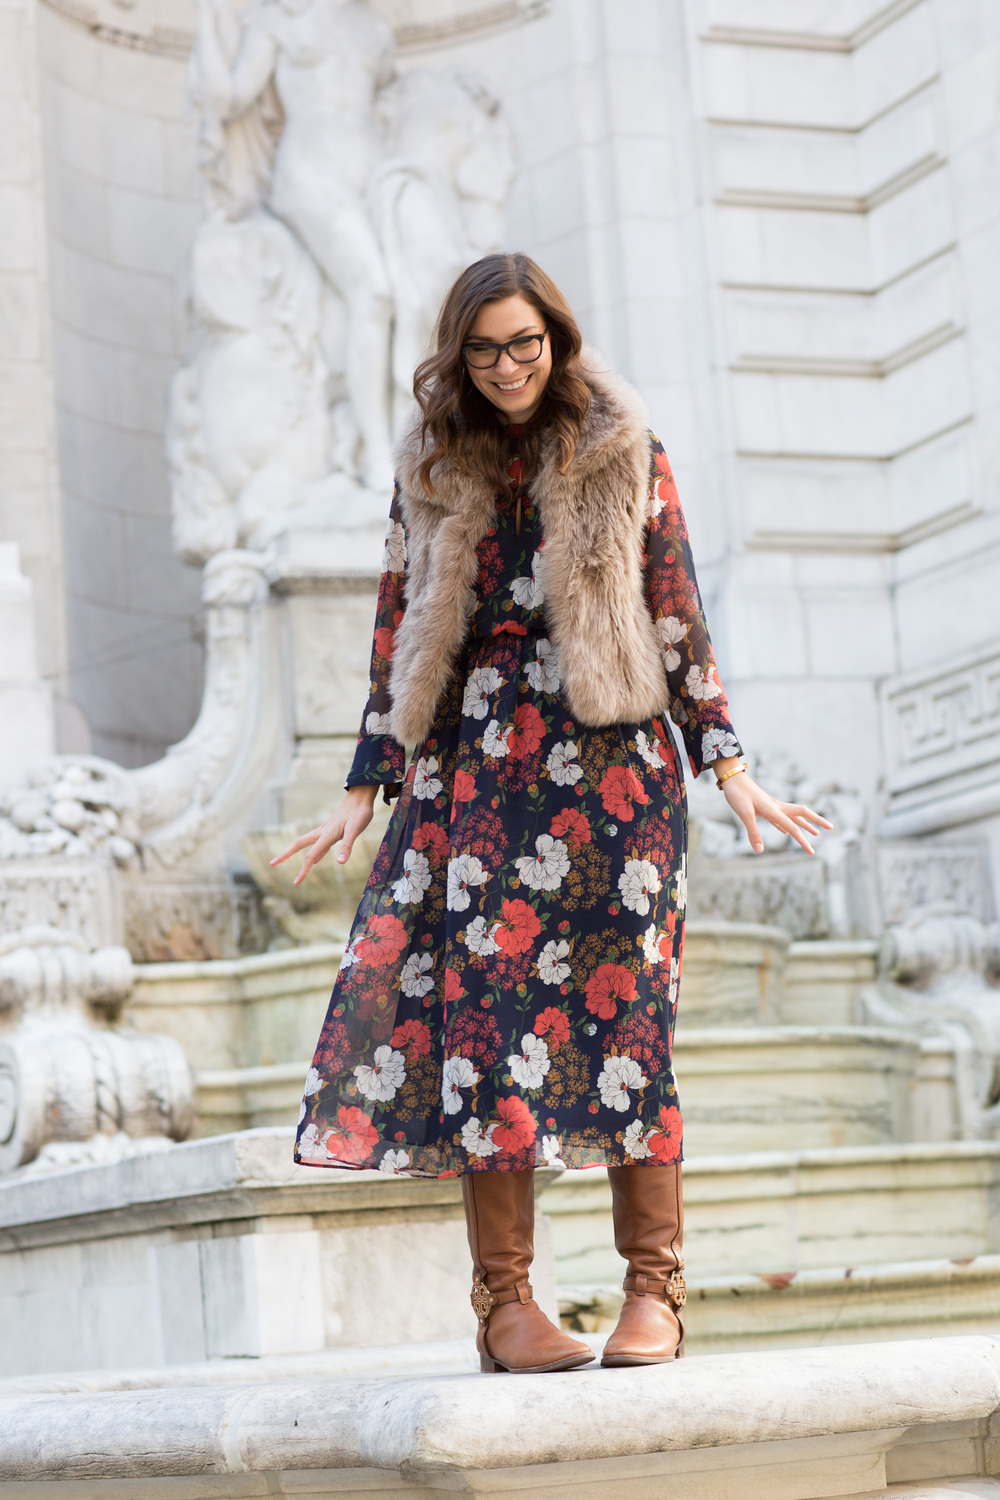 Zara Dress, Elie Tahari Vest, Tory Burch Riding Boots, Dior Glasses... outtake